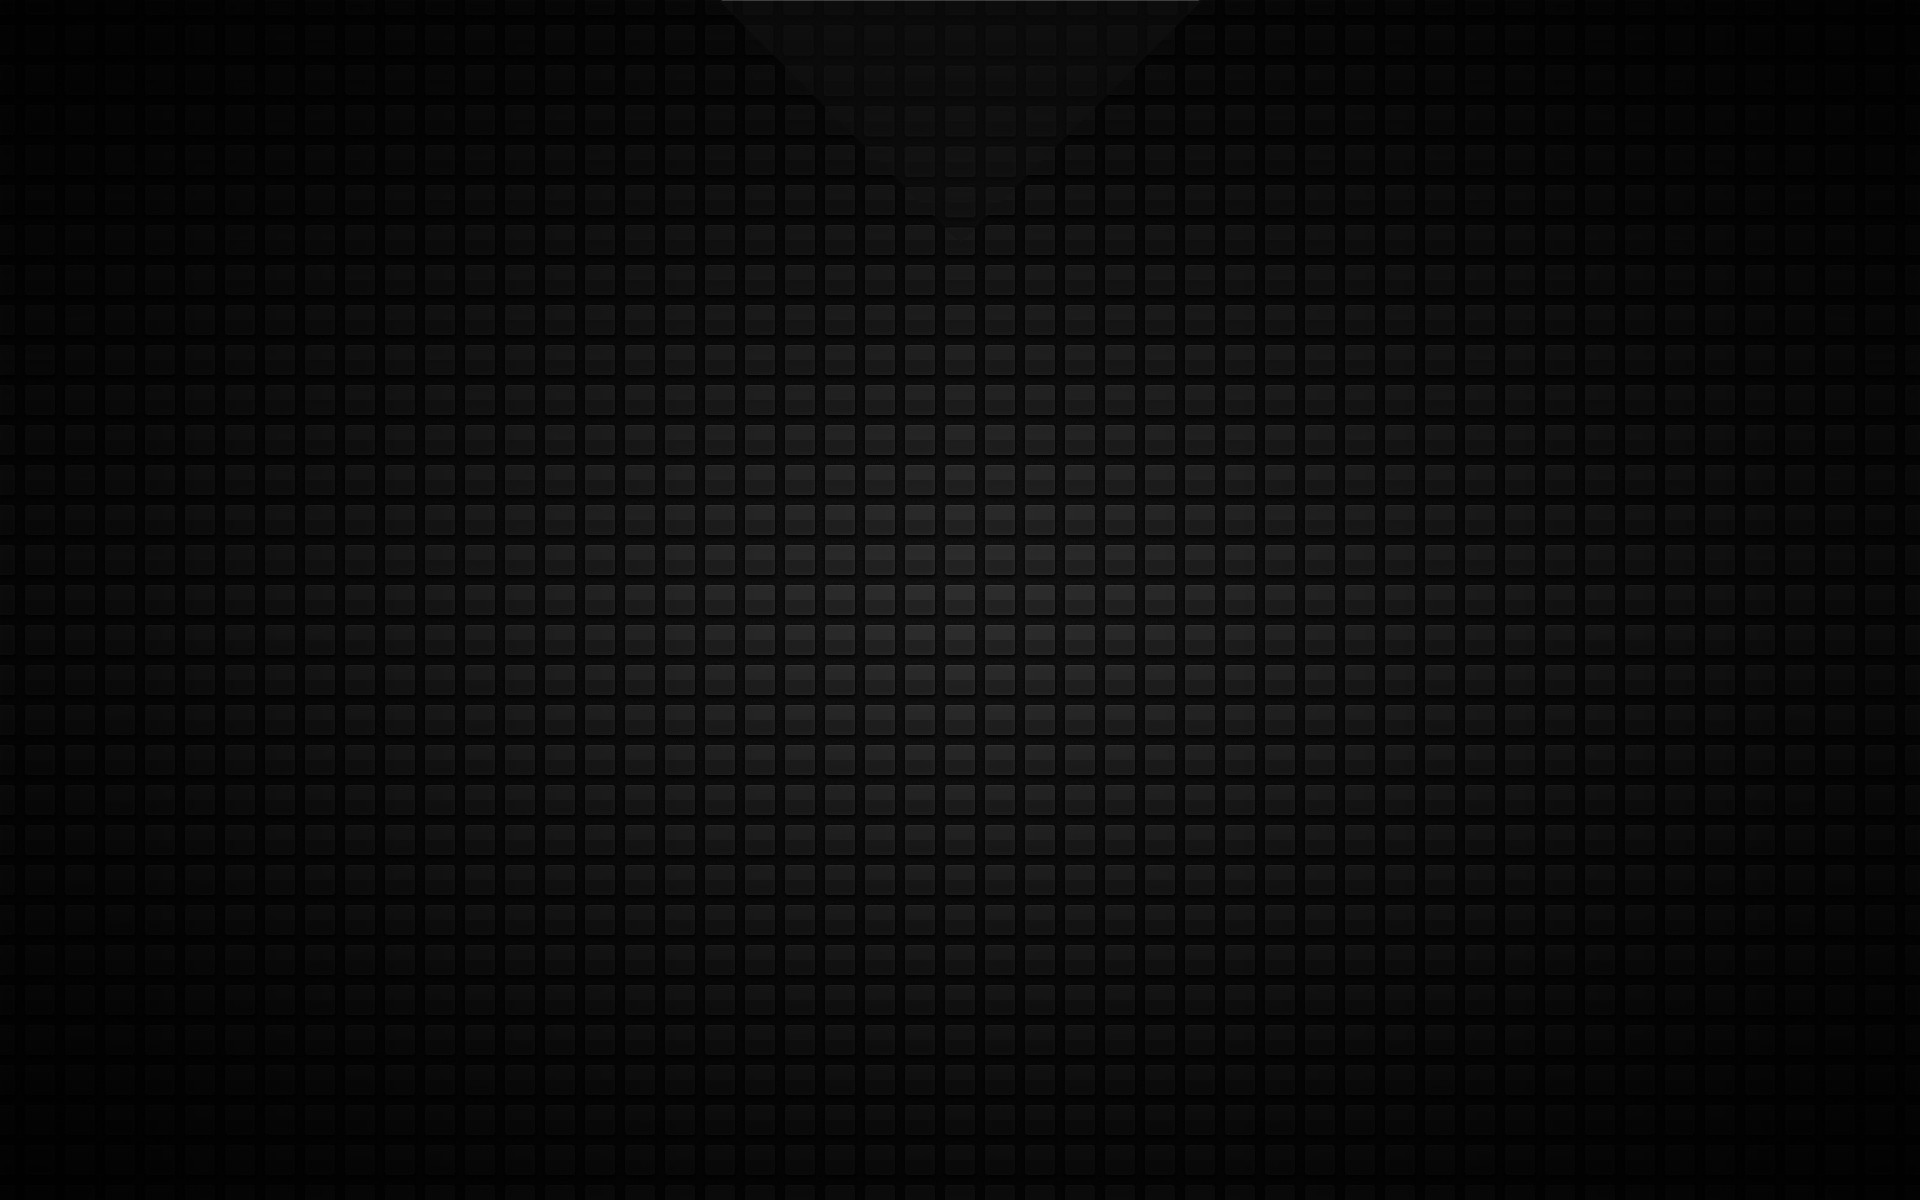 Black Wallpaper Background : HD Black wallpaper ·① Download free amazing full HD ...